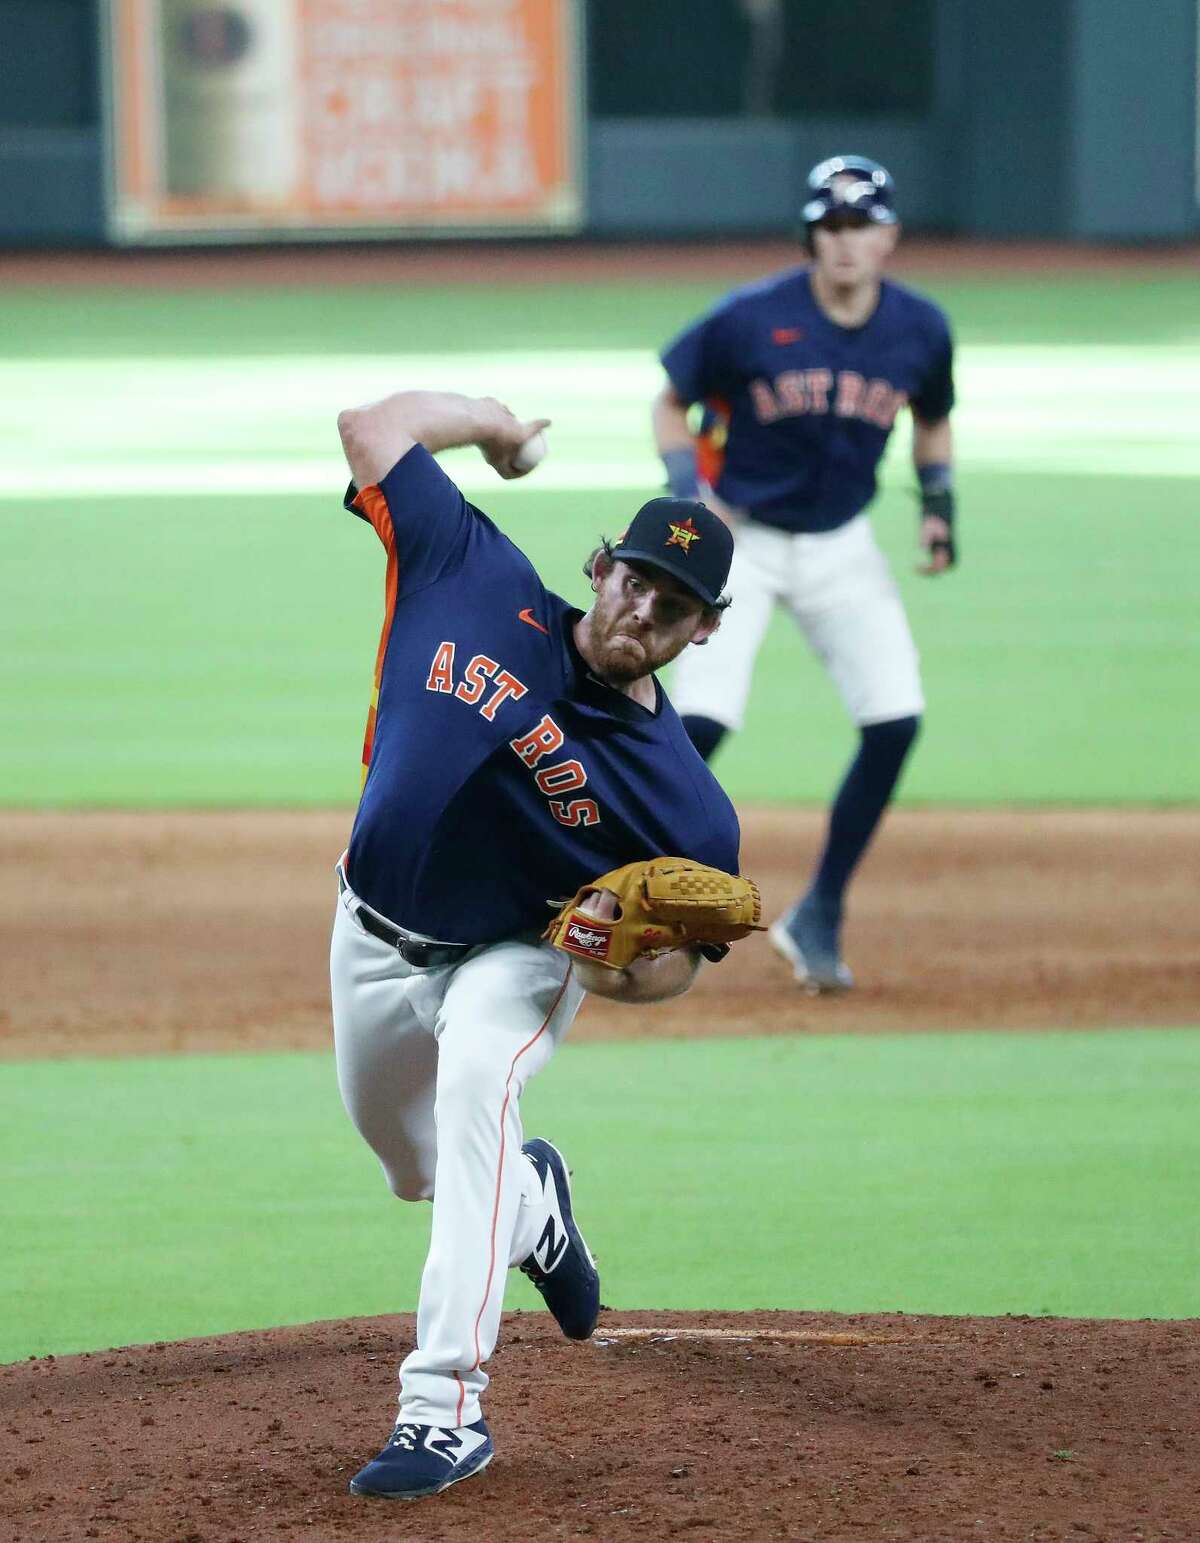 Houston Astros pitcher Joe Biagini pitches during an intrasquad game at the Astros summer camp at Minute Maid Park, Tuesday, July 14, 2020, in Houston.